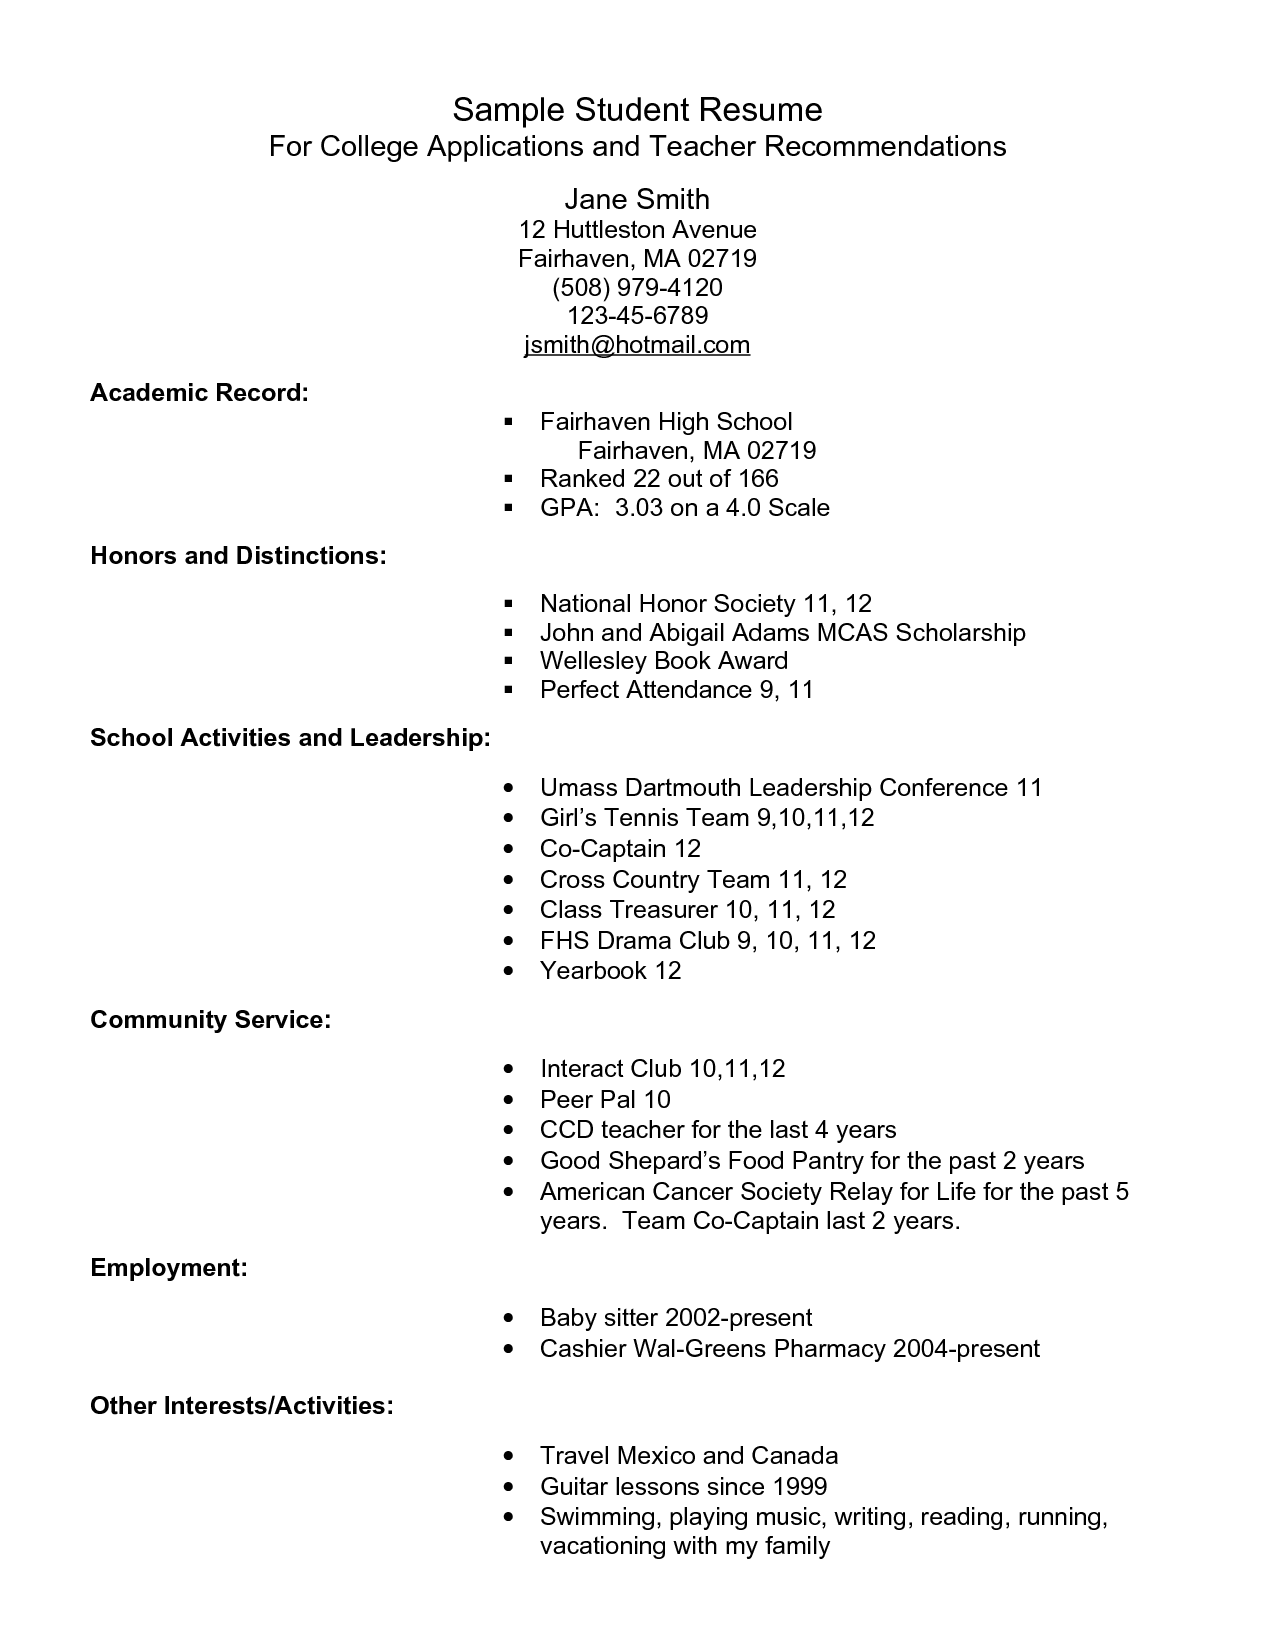 Example Resume For High School Students For College Applications Sample  Student Resume   PDF By Smapdi59  College Student Resume Samples